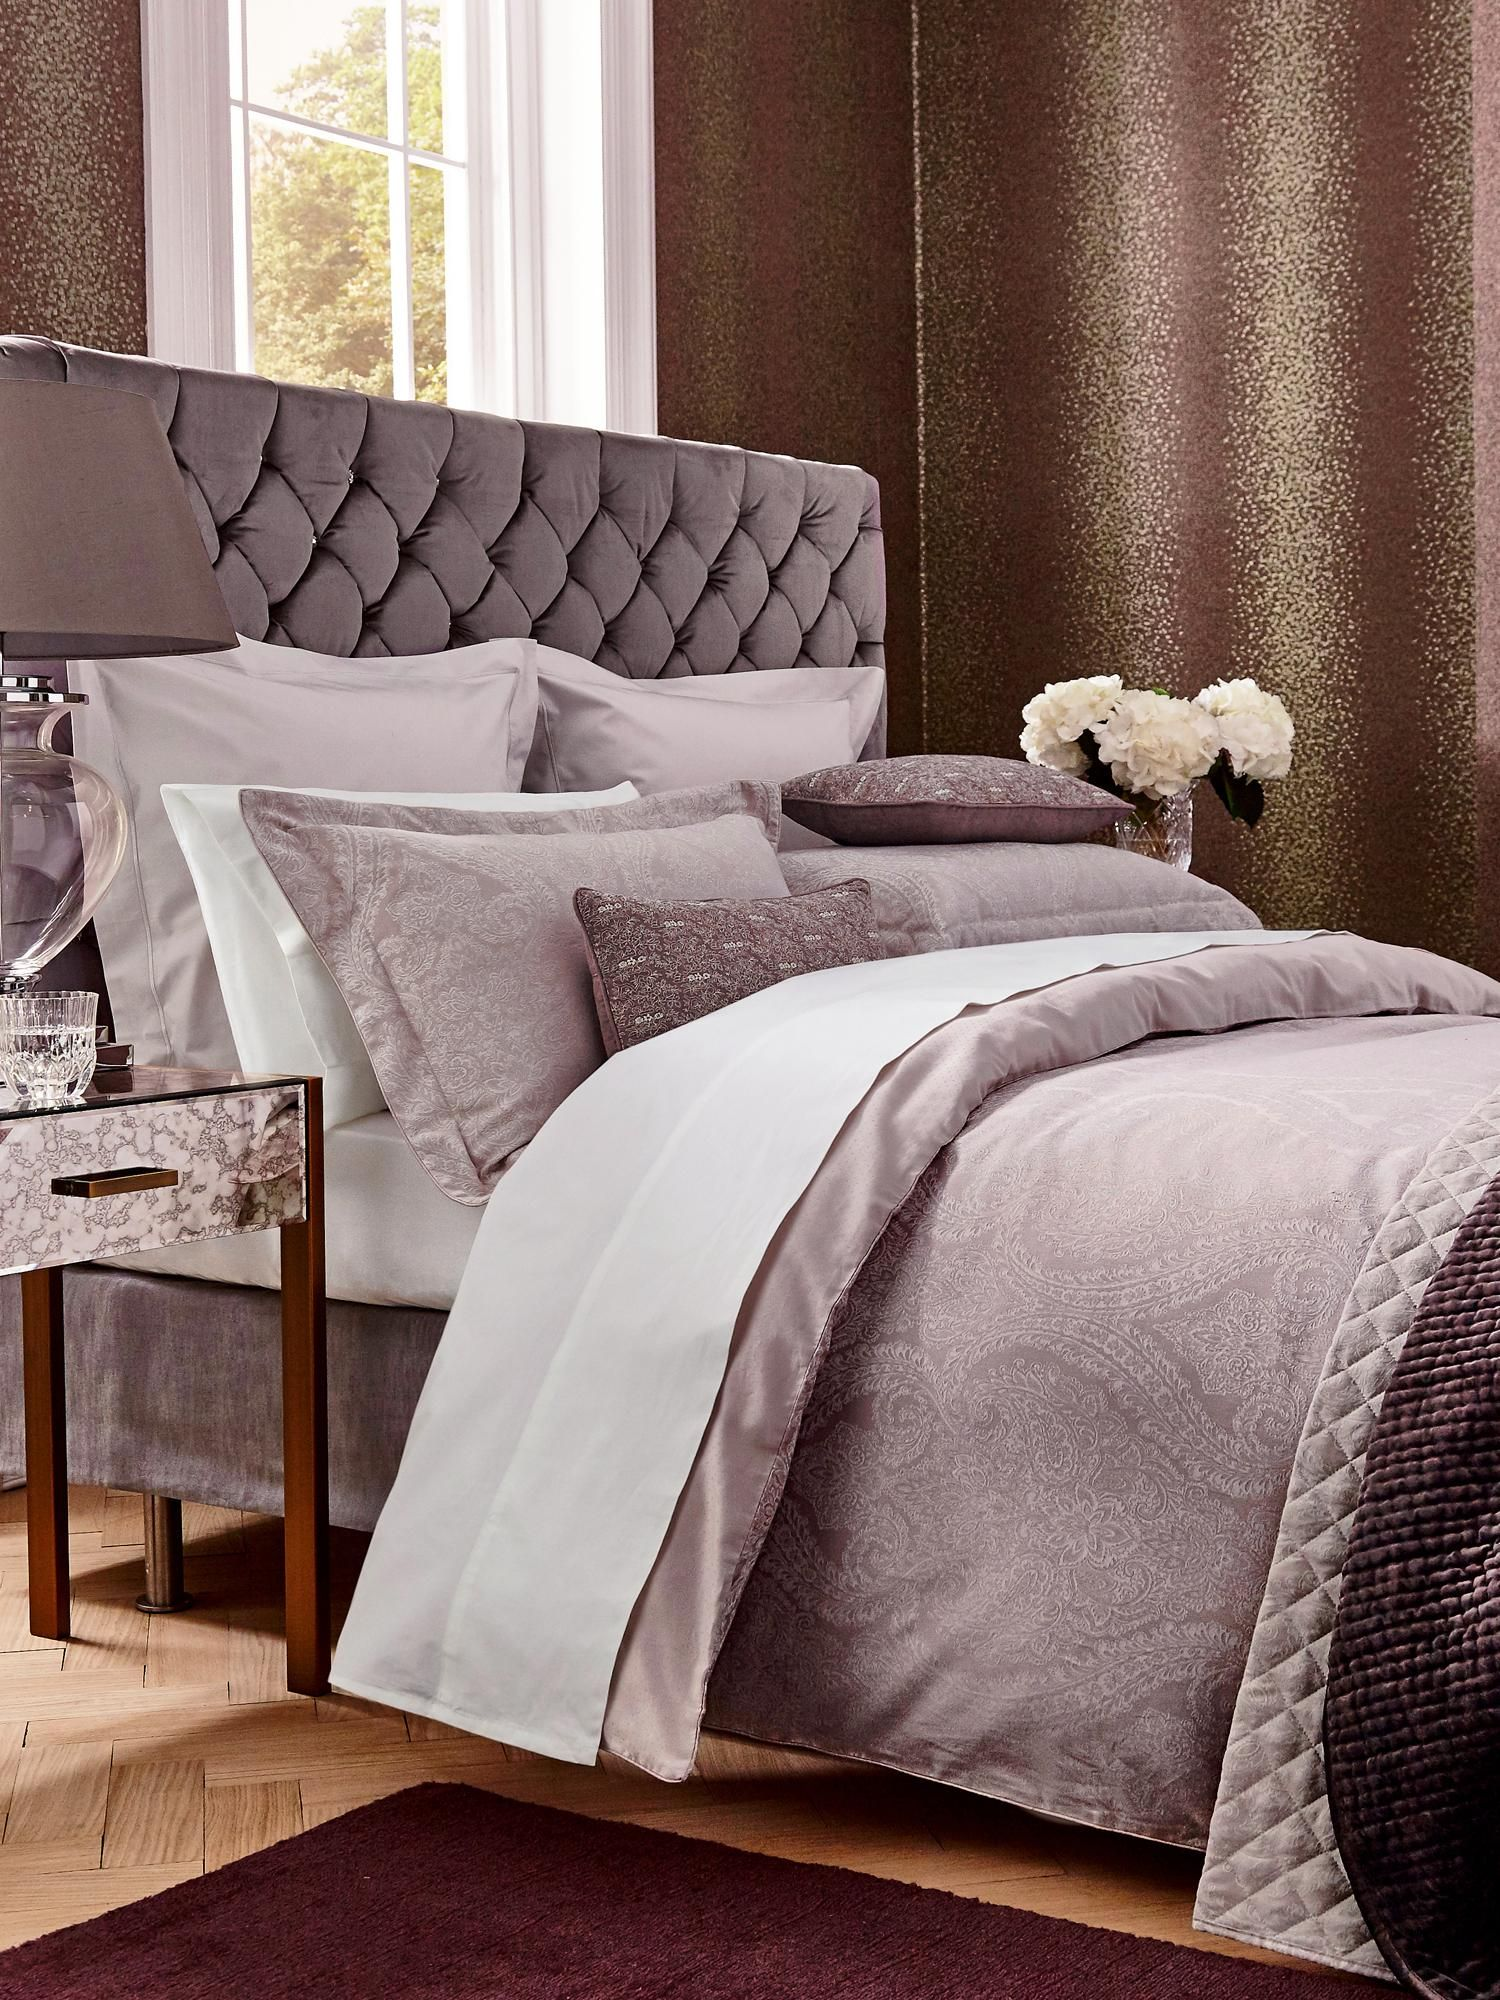 Take a closer look at the Fable Chera Duvet Cover at House